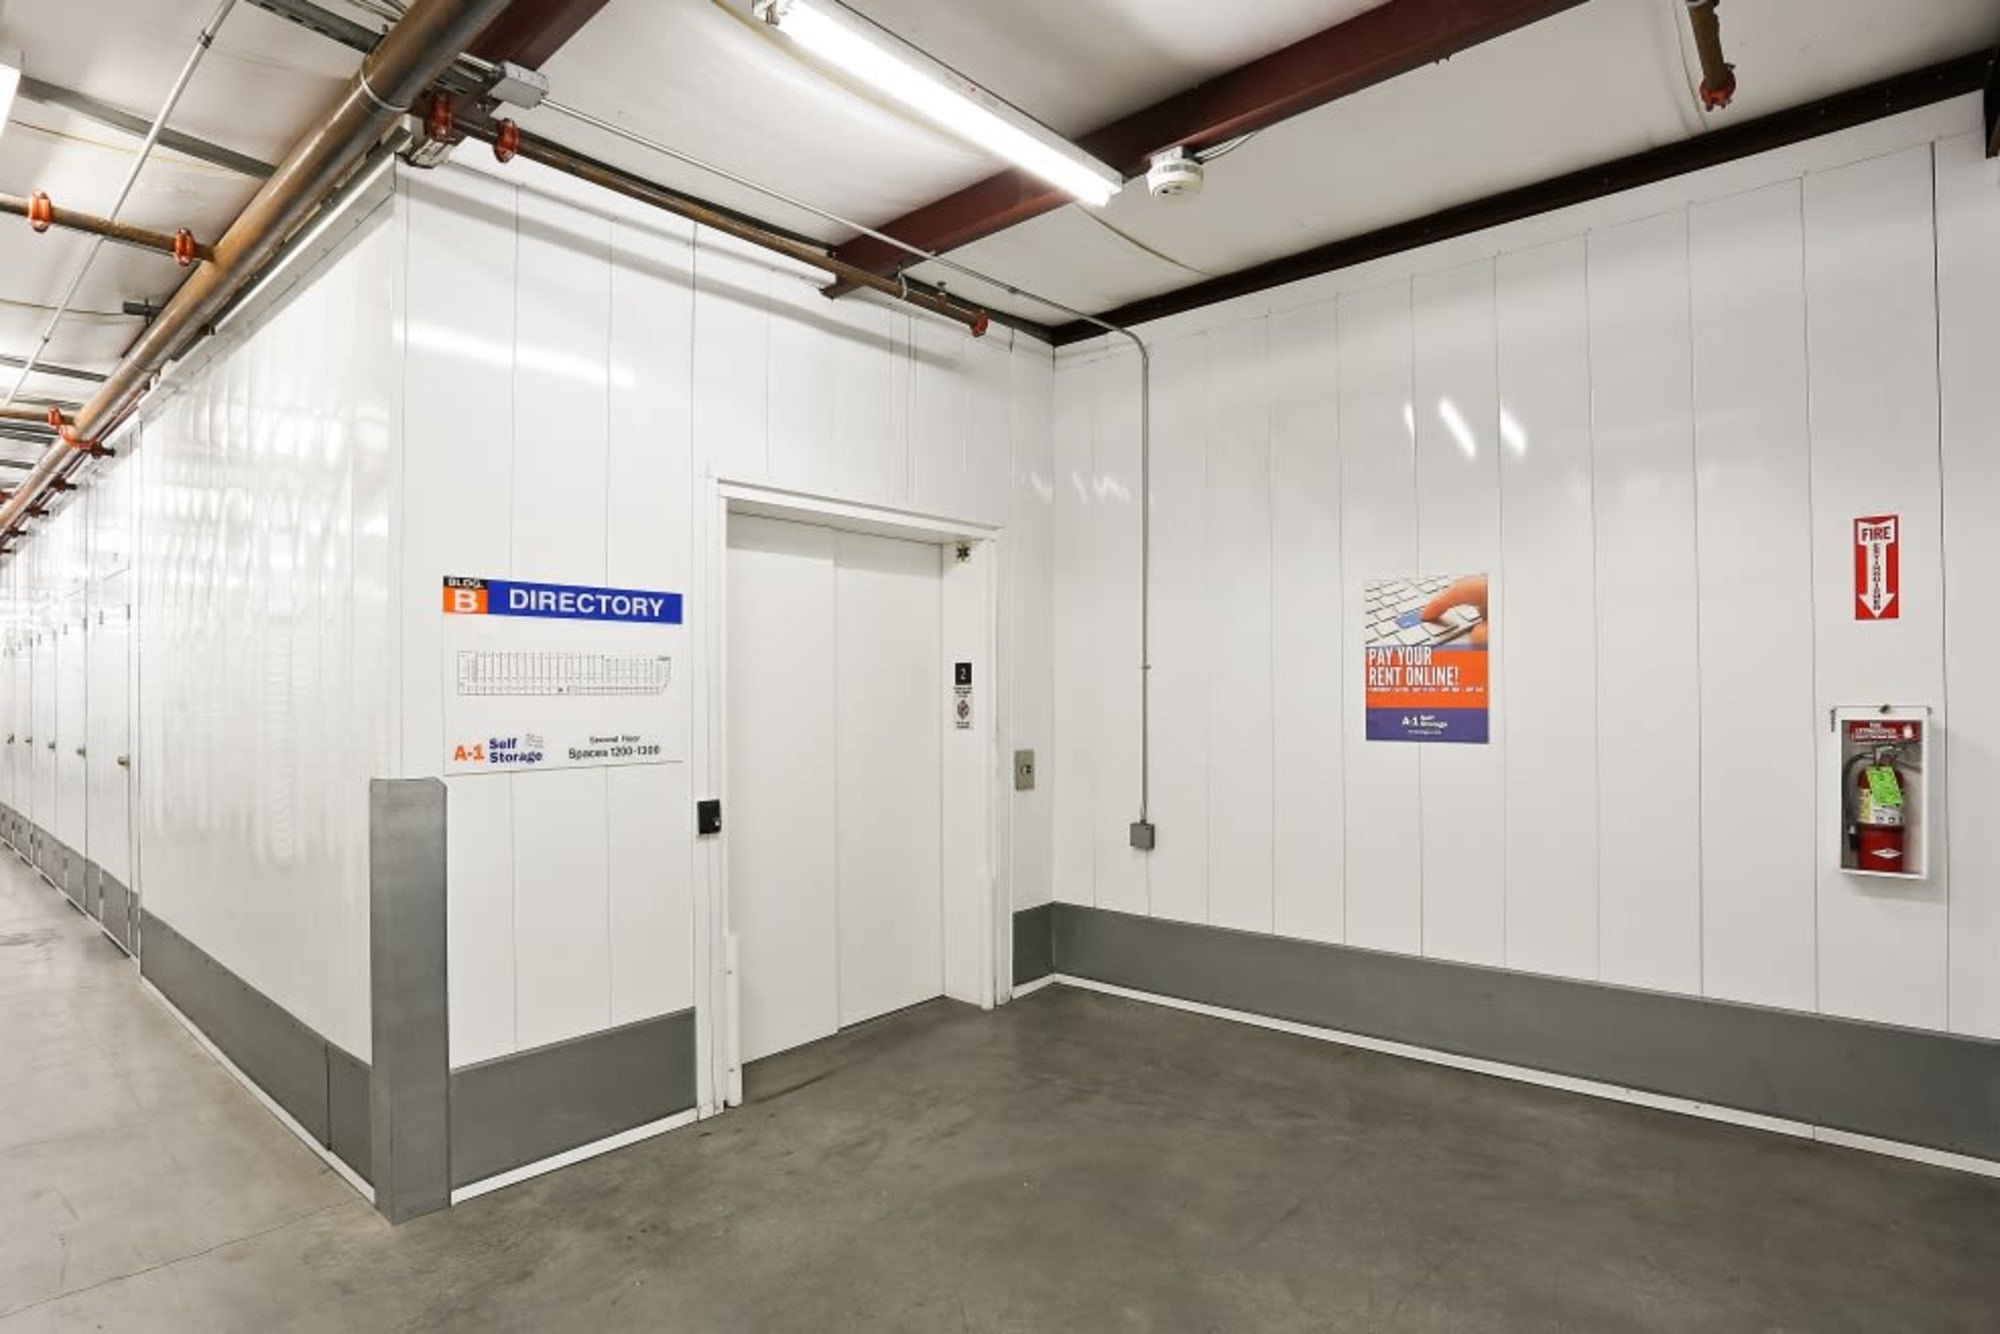 Tall ceilings and a freight elevator at A-1 Self Storage in La Mesa, California